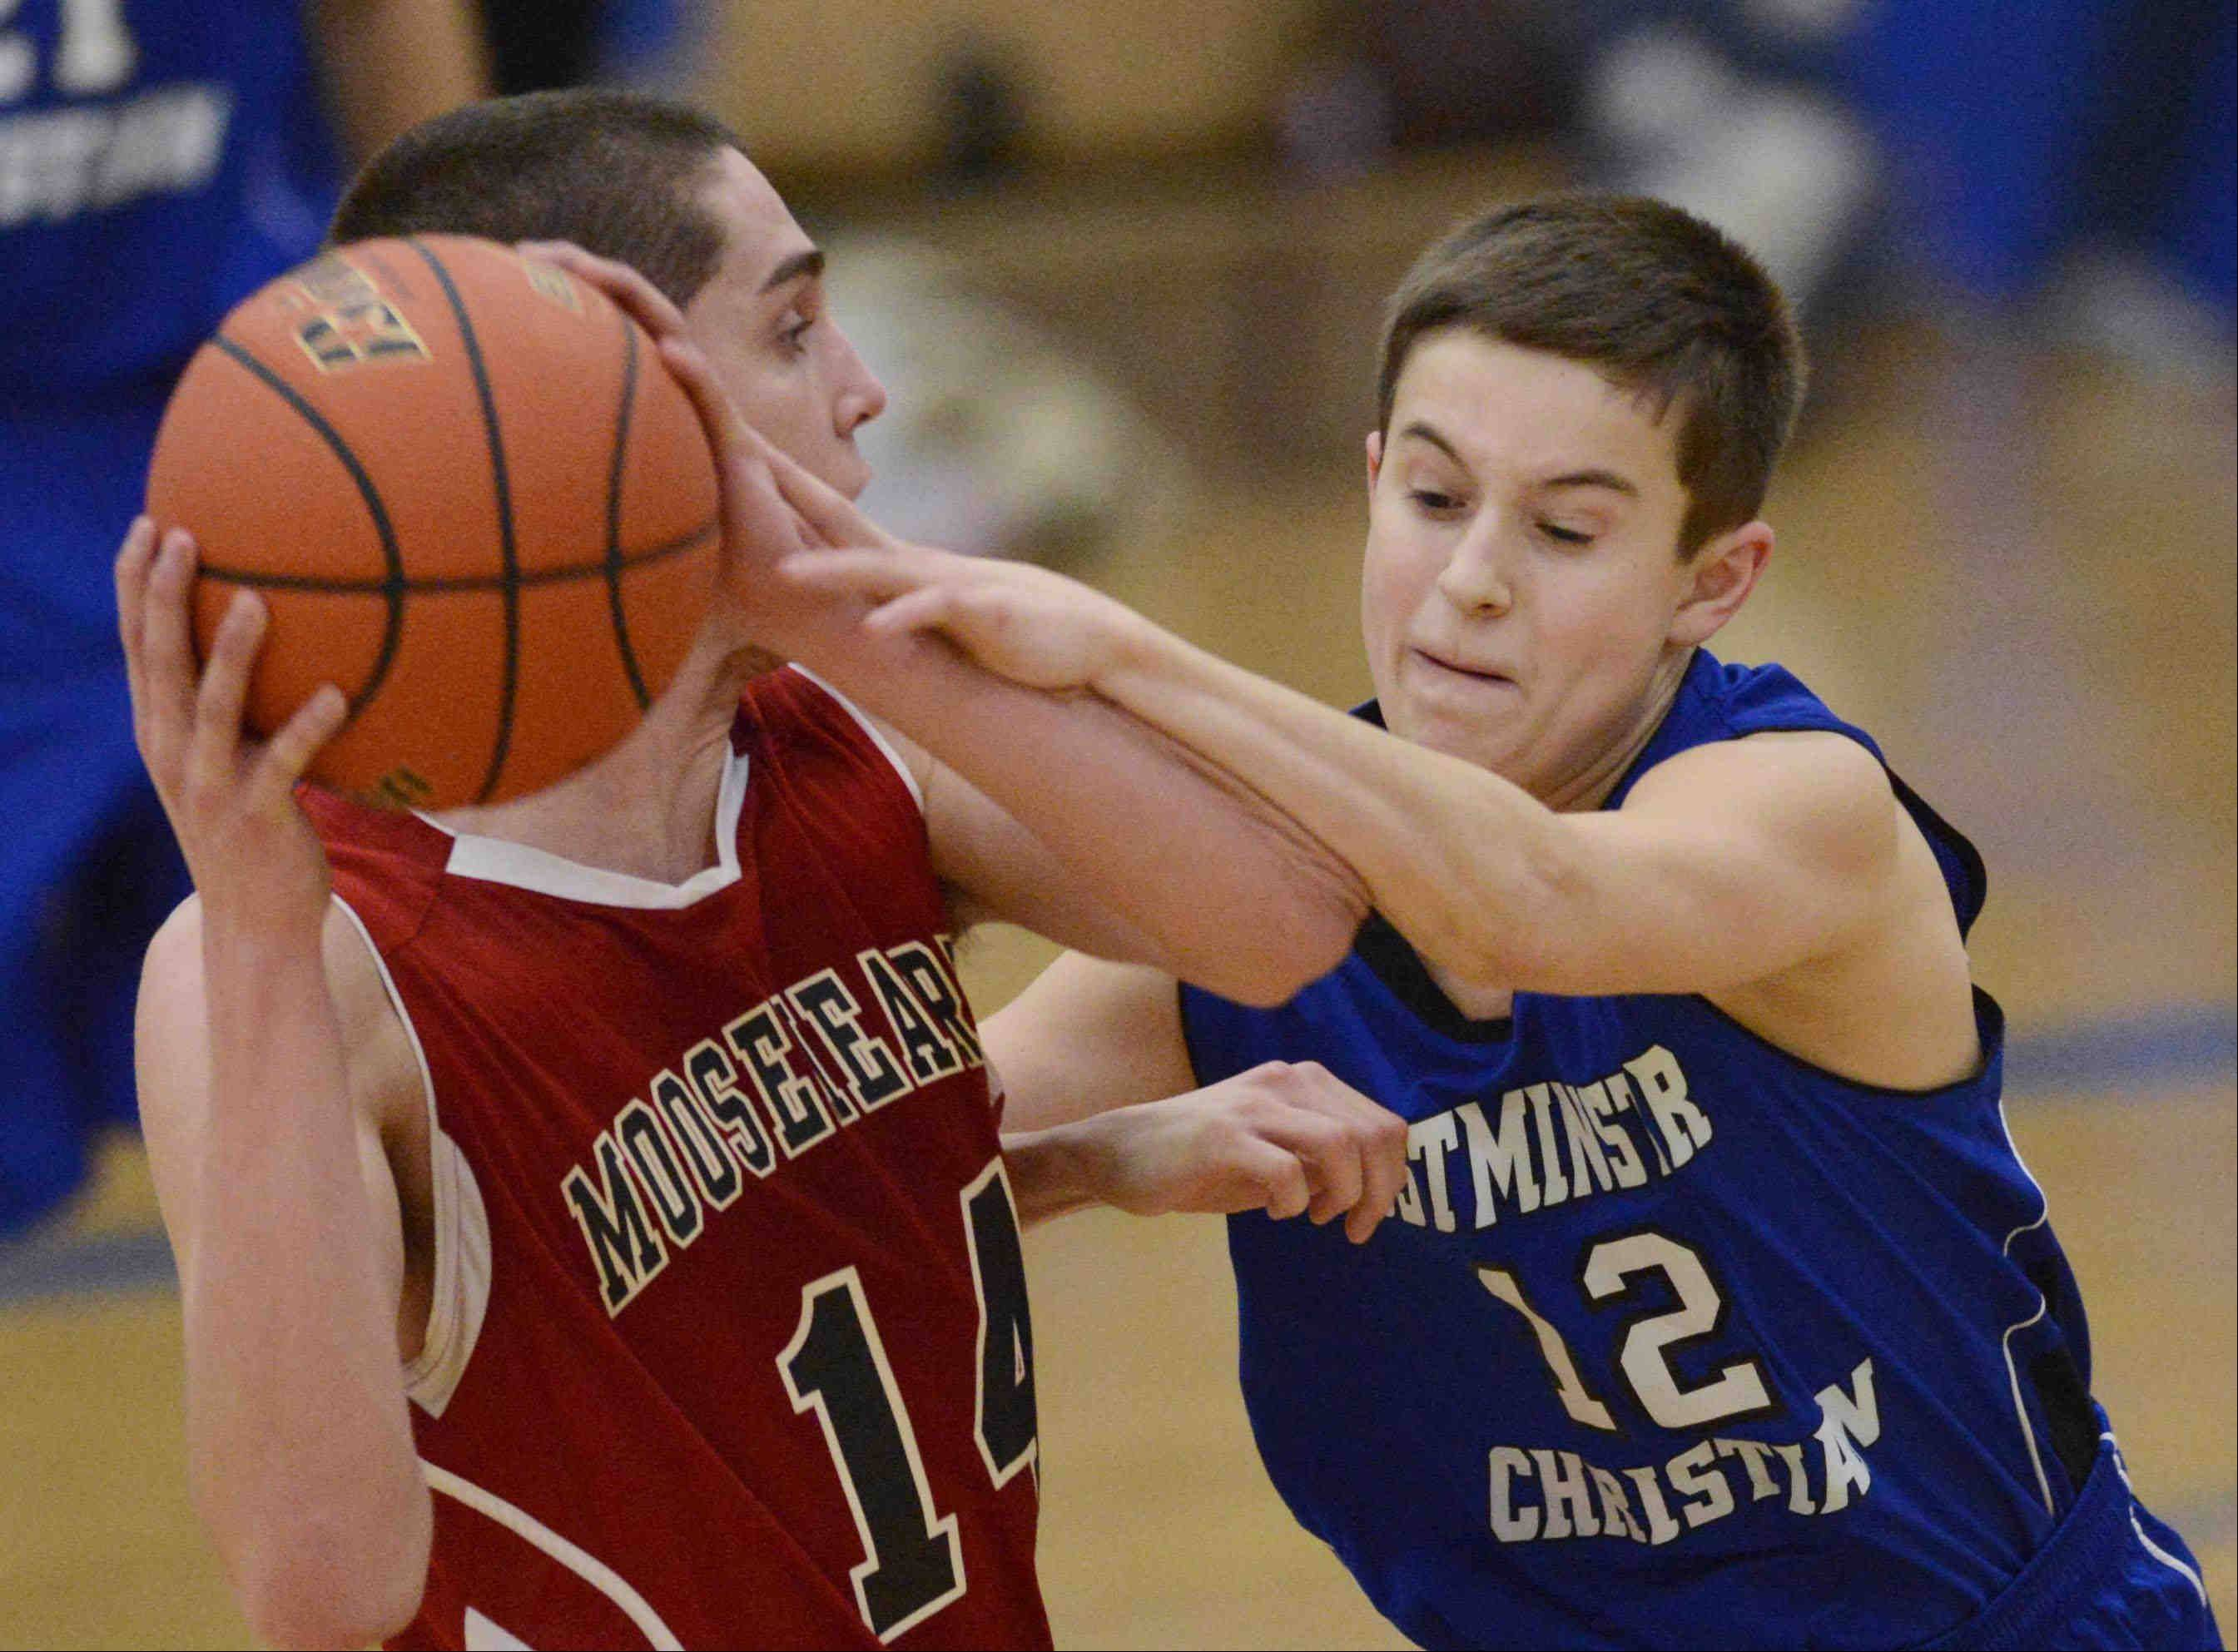 Westminster Christian's Dillon Rejman commits a reaching foul against Mooseheart's Peter Kurowski.